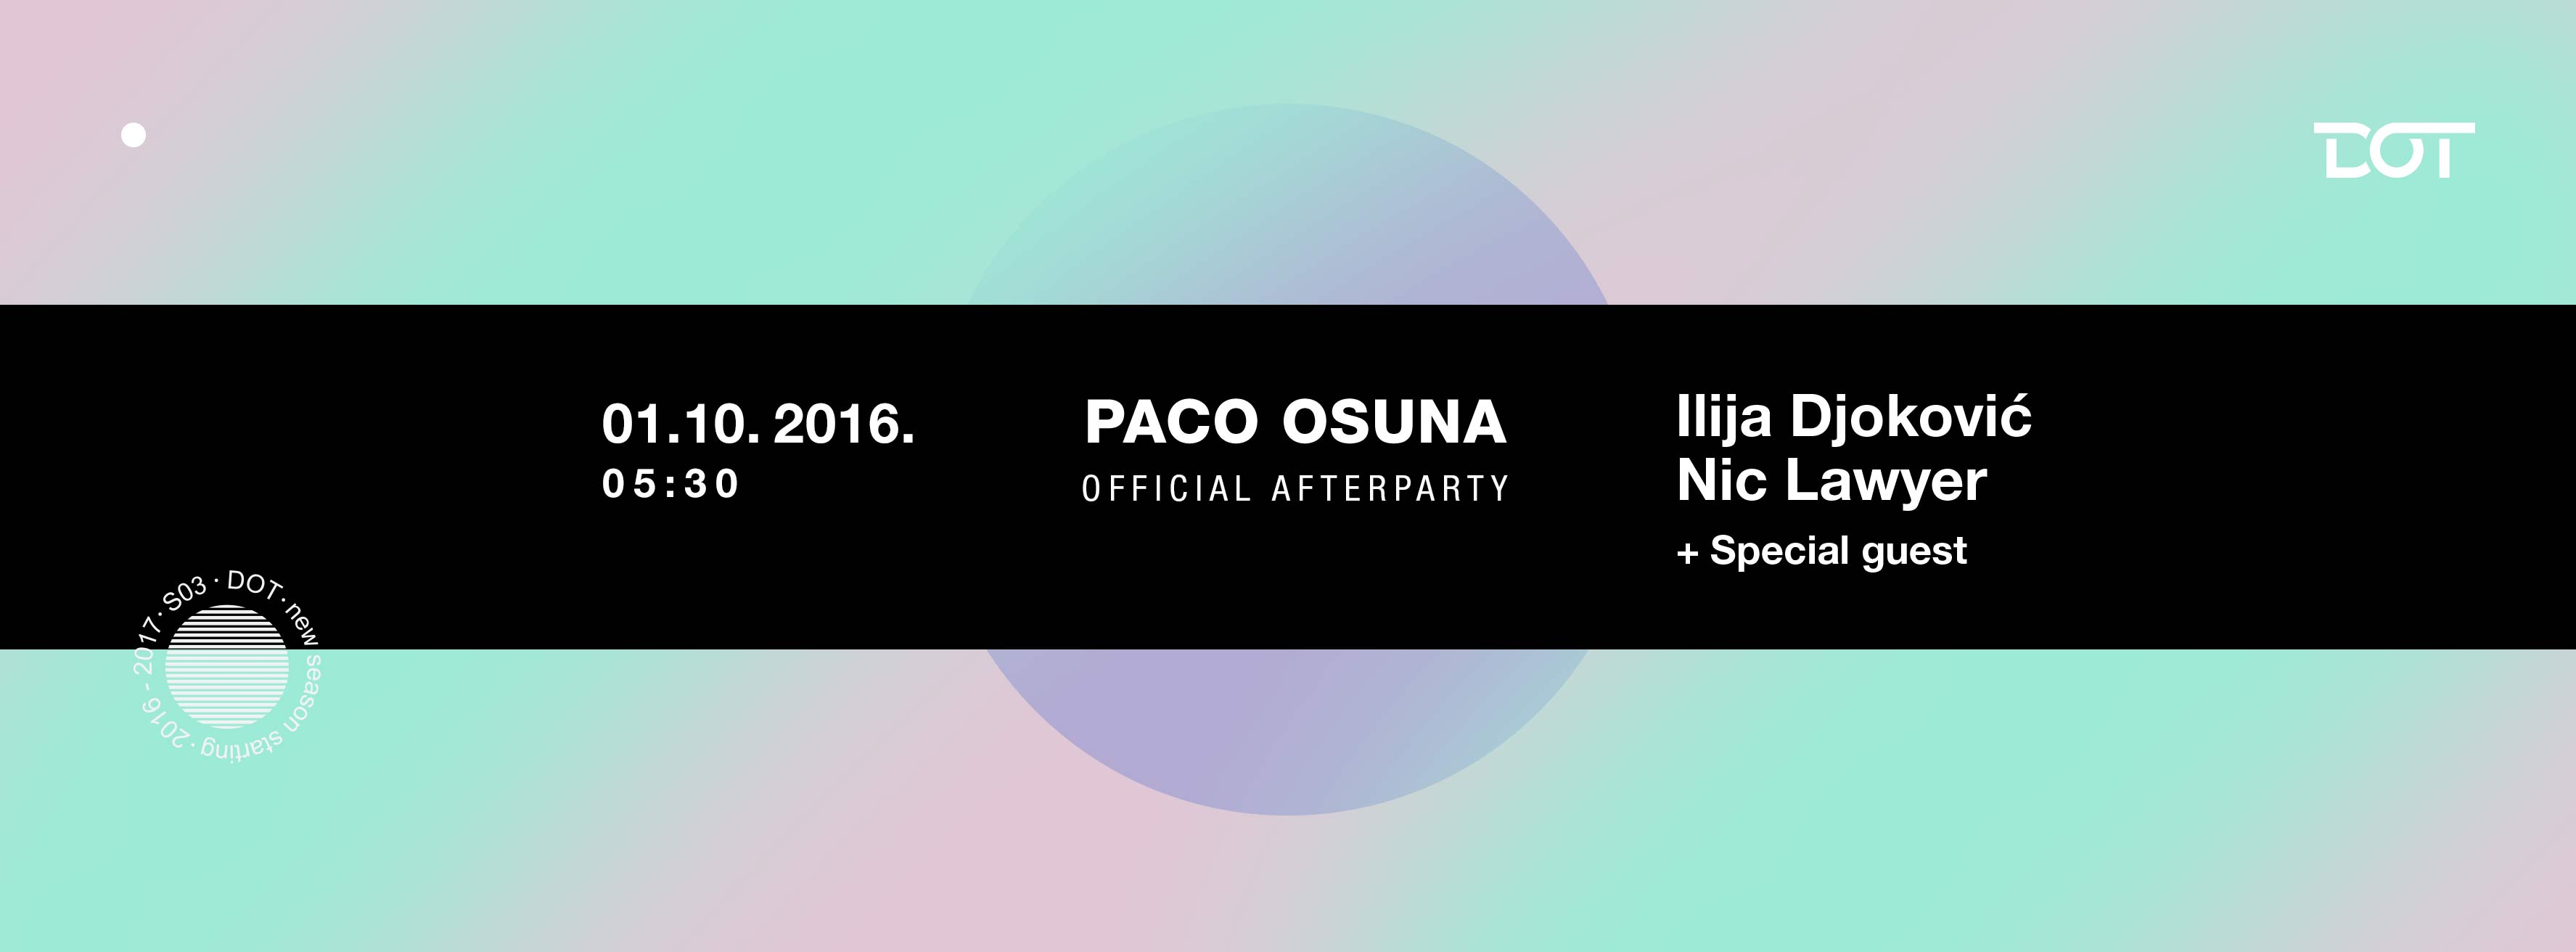 Paco Osuna afterparty u DOTu